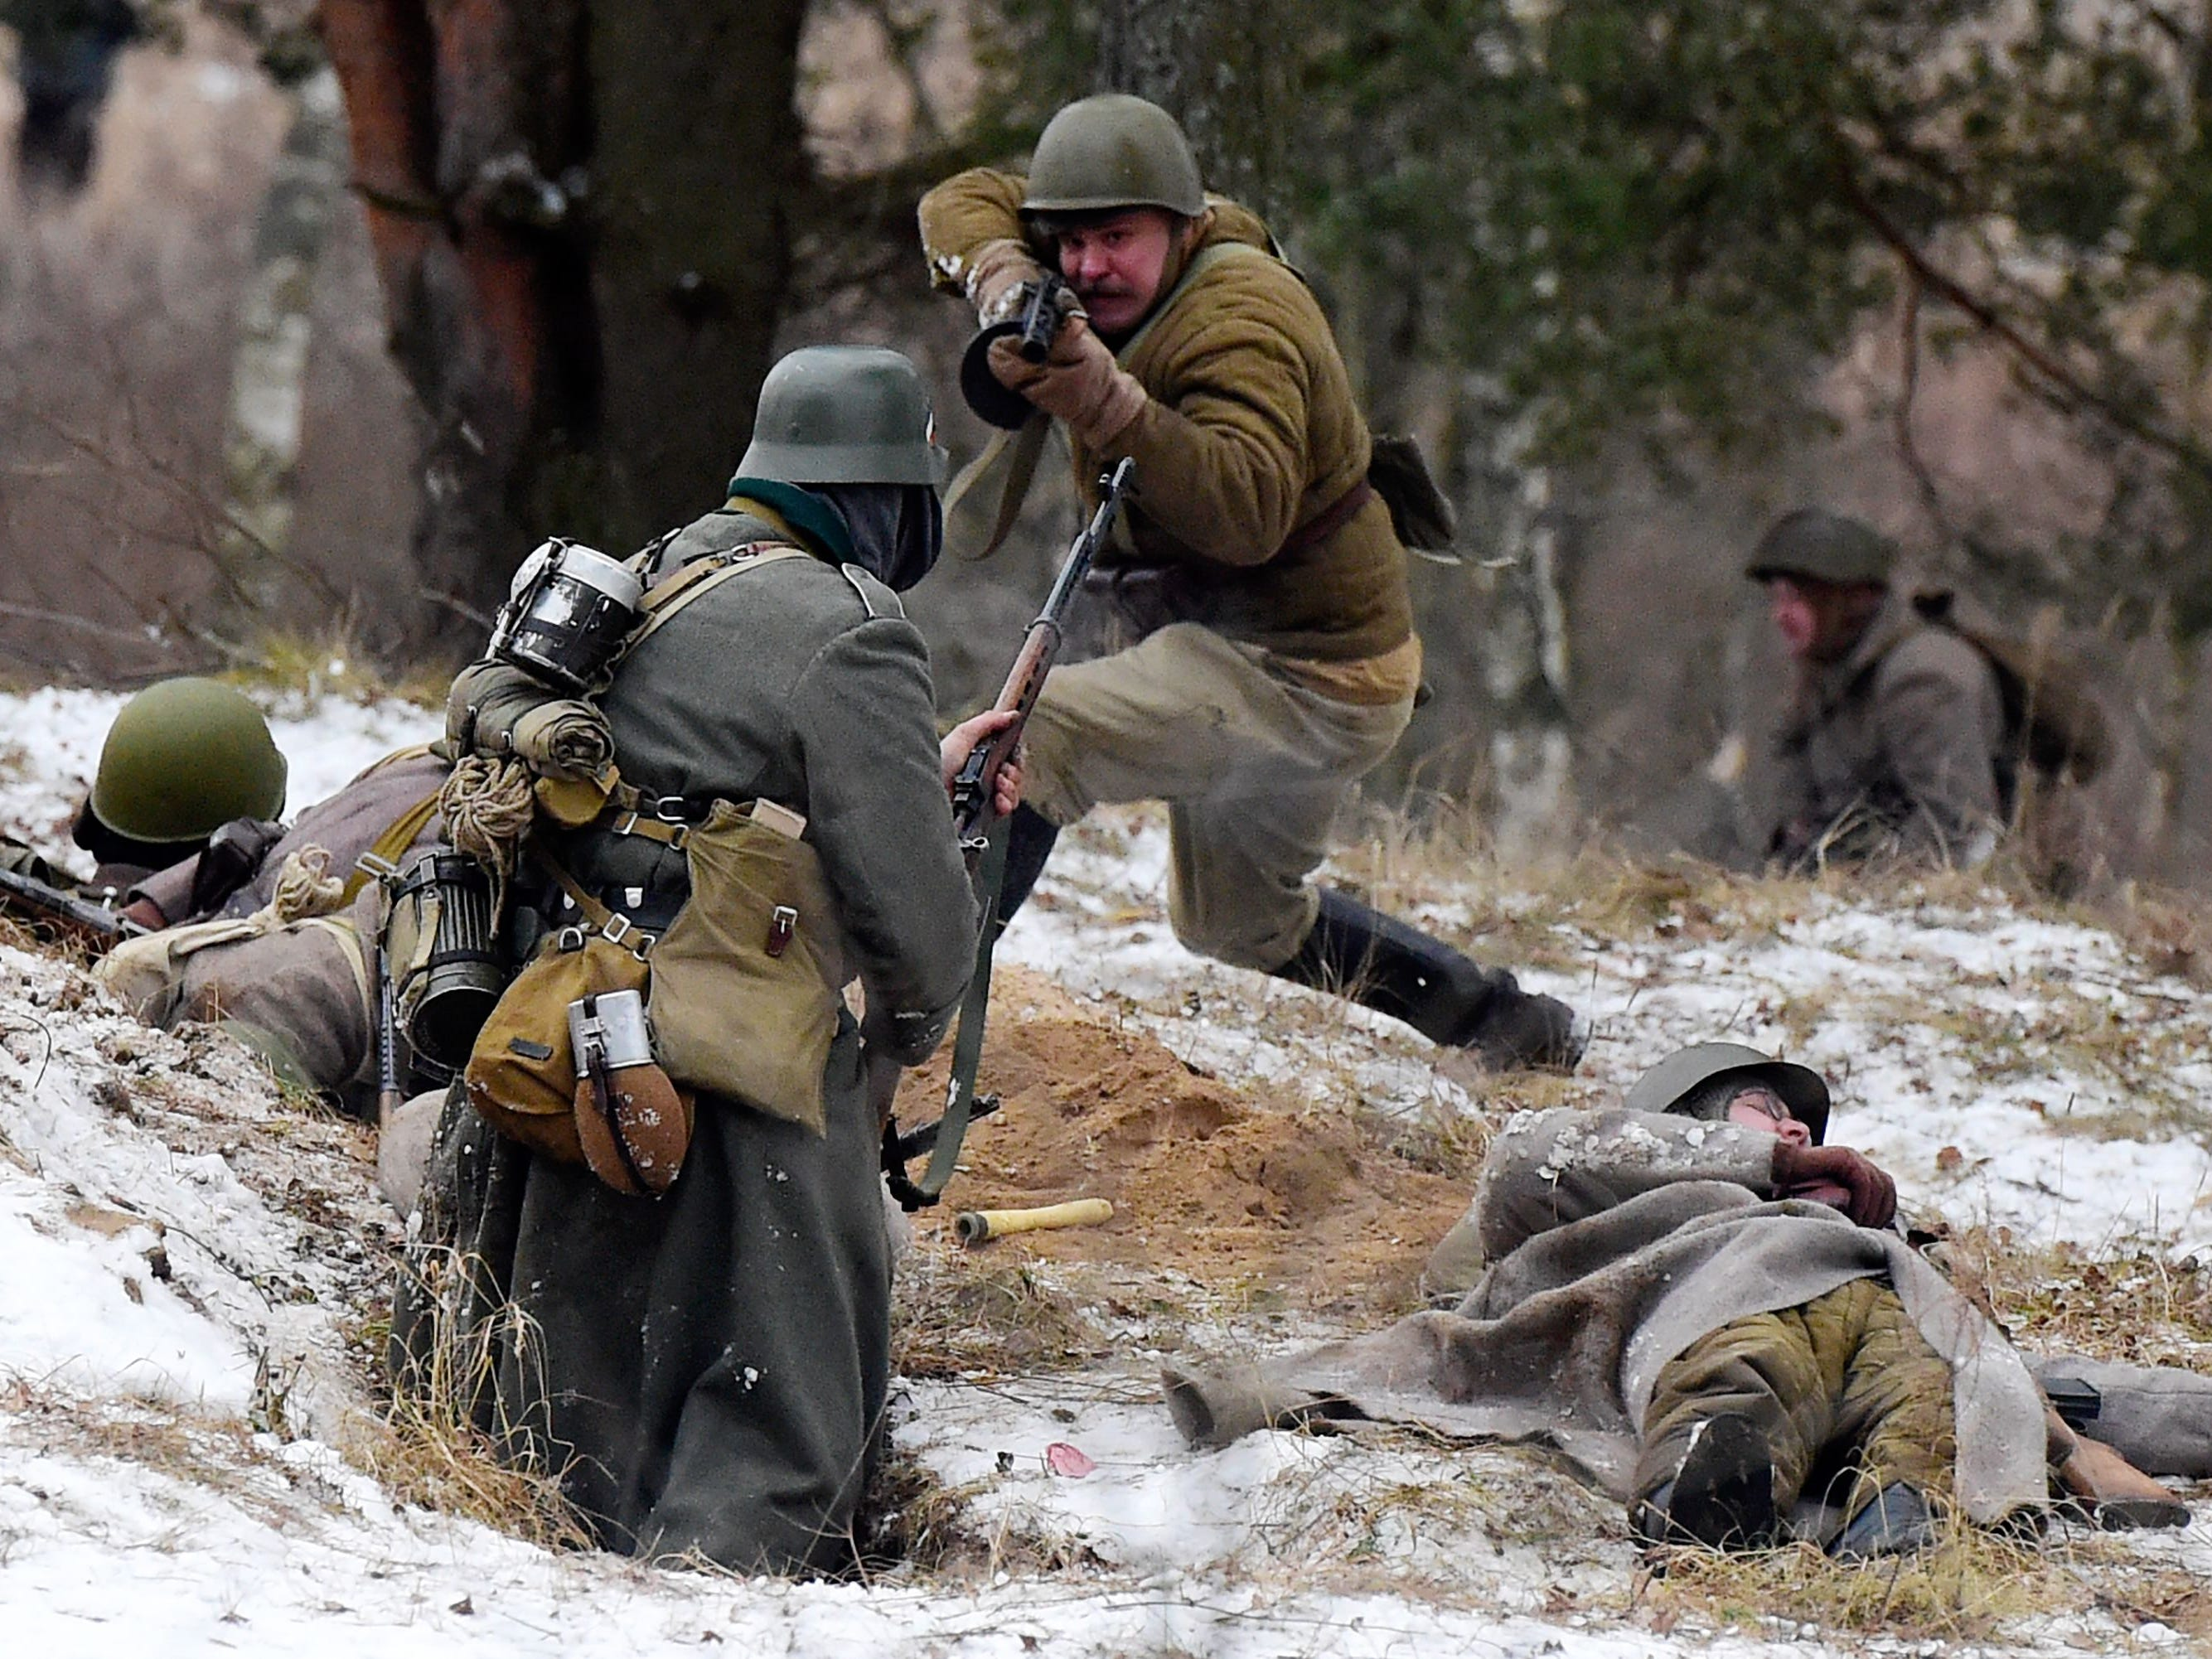 Members of a historical military club, wearing Soviet and Nazi uniforms, participate in a World War II battle re-enactment marking the Fatherland Heroes Day near Kirovsk, outside Saint Petersburg on December 9, 2018.